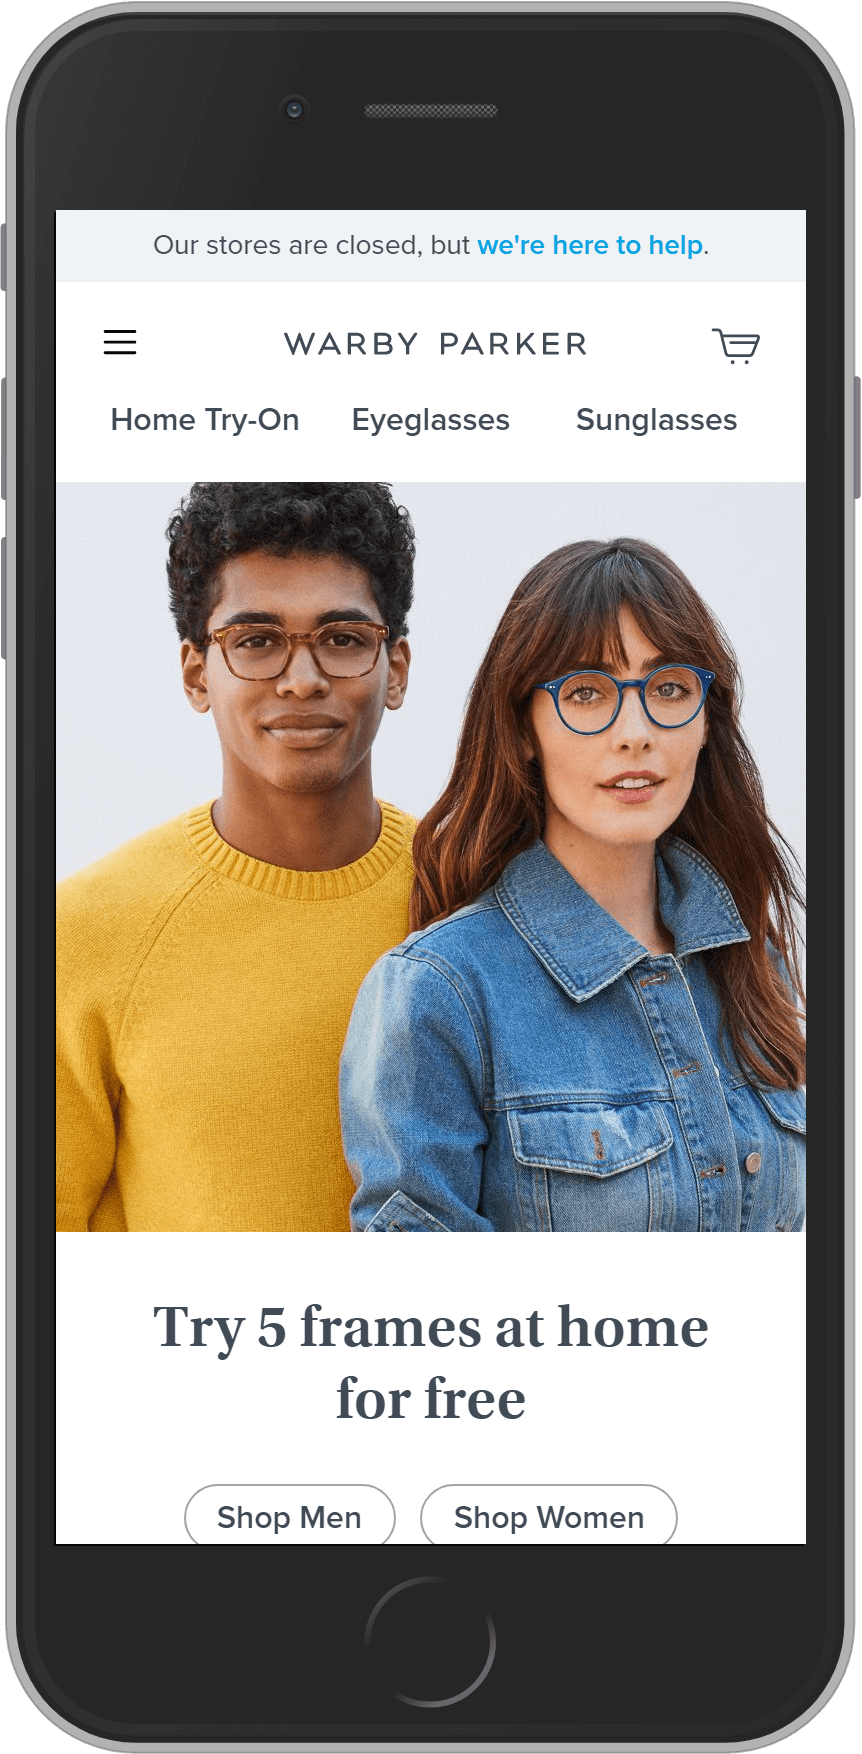 Warby Parker on mobile